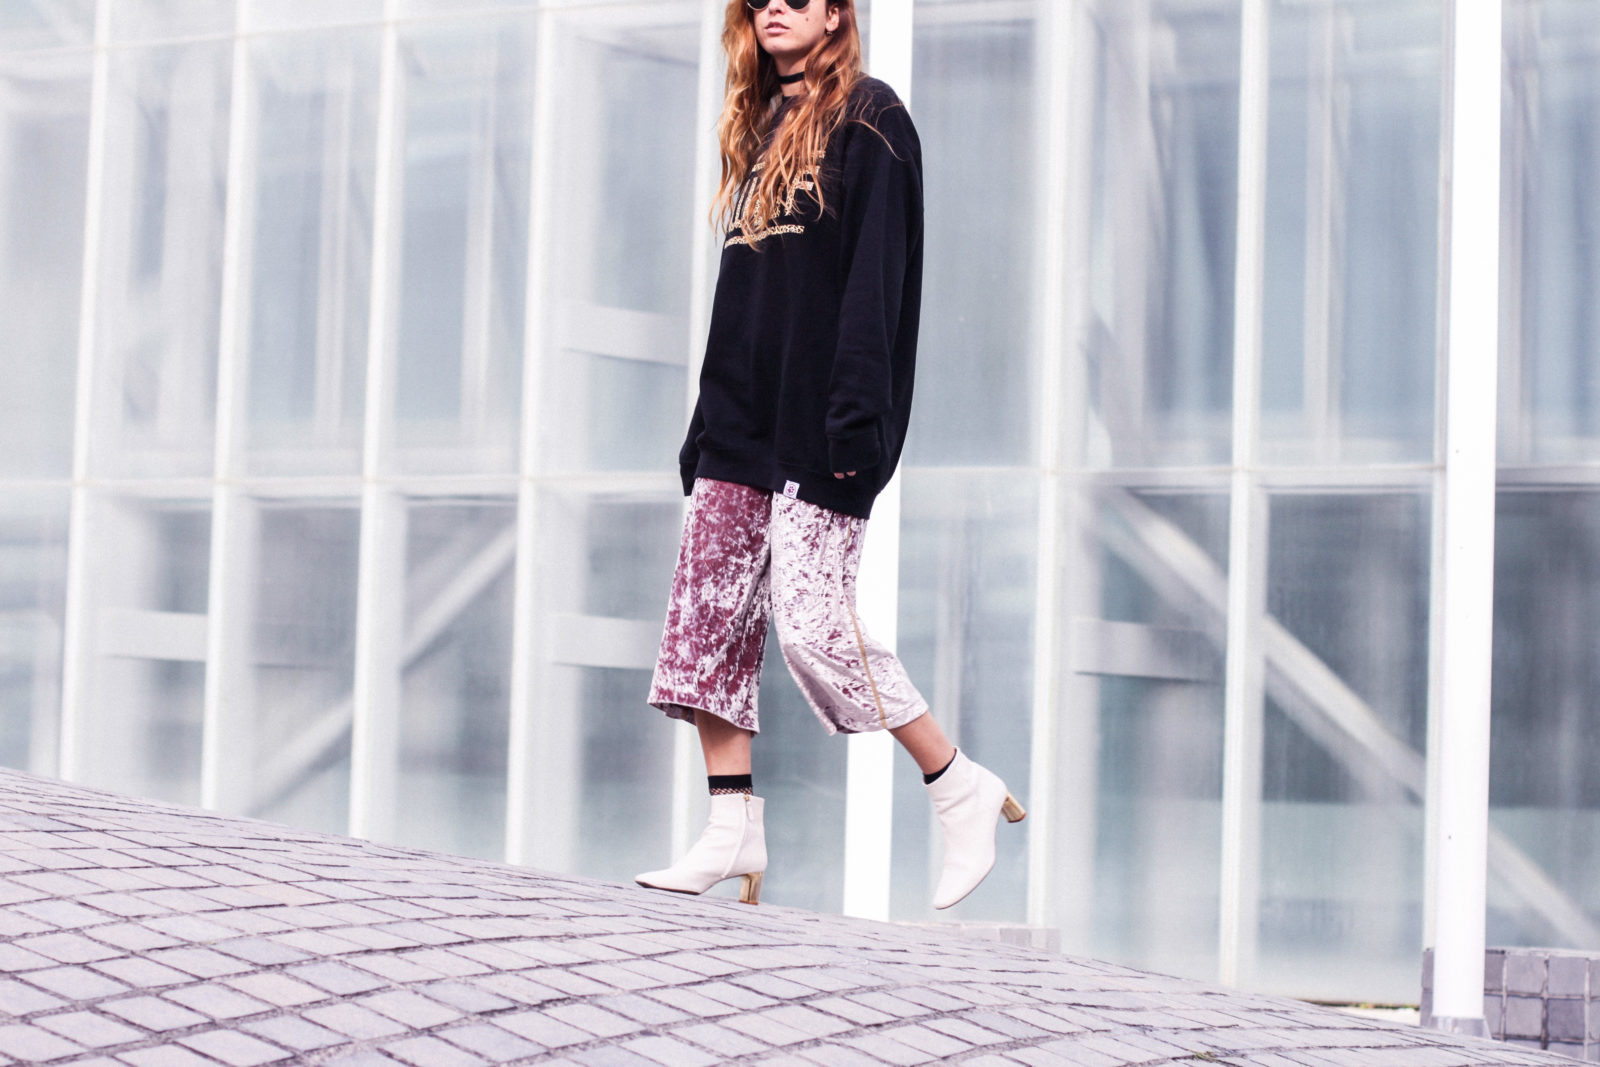 sudadera_woof_old_dogs_pantalones_terciopelo_rosa_botines_blancos_sweatshirt_oversize_choker_calcetines_rejilla_tendencias_2016_fall_trends_street_style_donkeycool-38